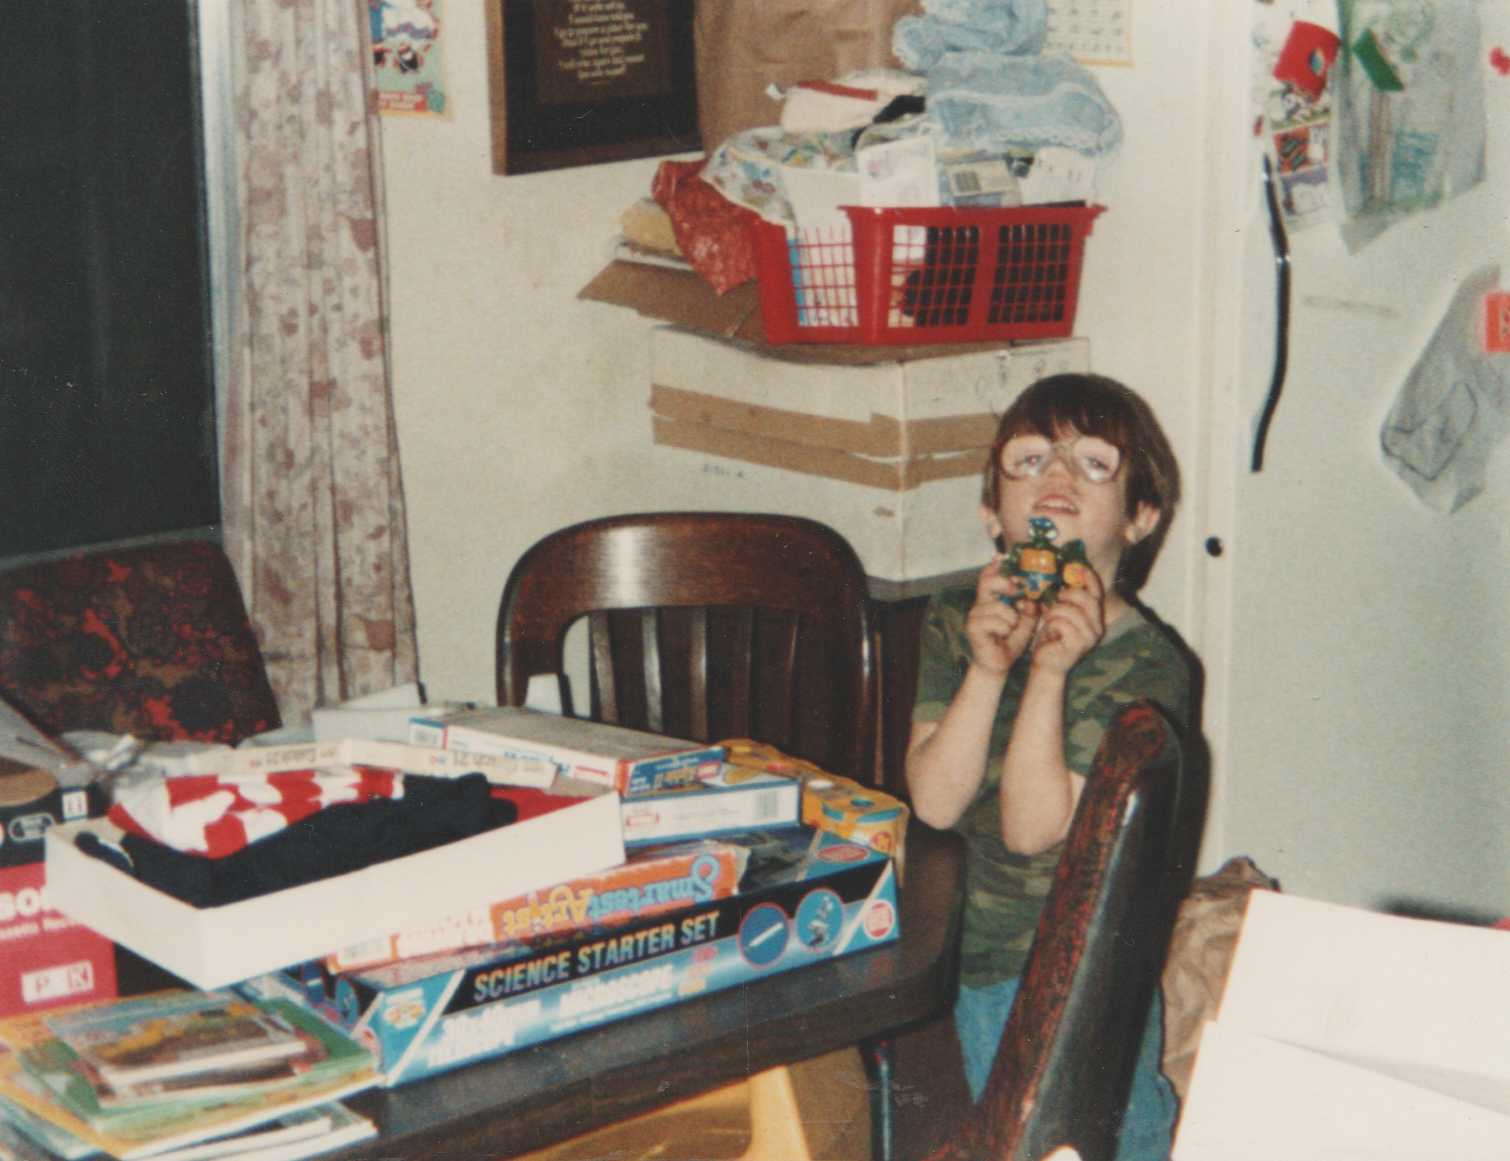 1991-12-25 - Christmas of 1991 - Joey, Crystal, Katie, Presents, Piano, Toys, 3pics-1.png